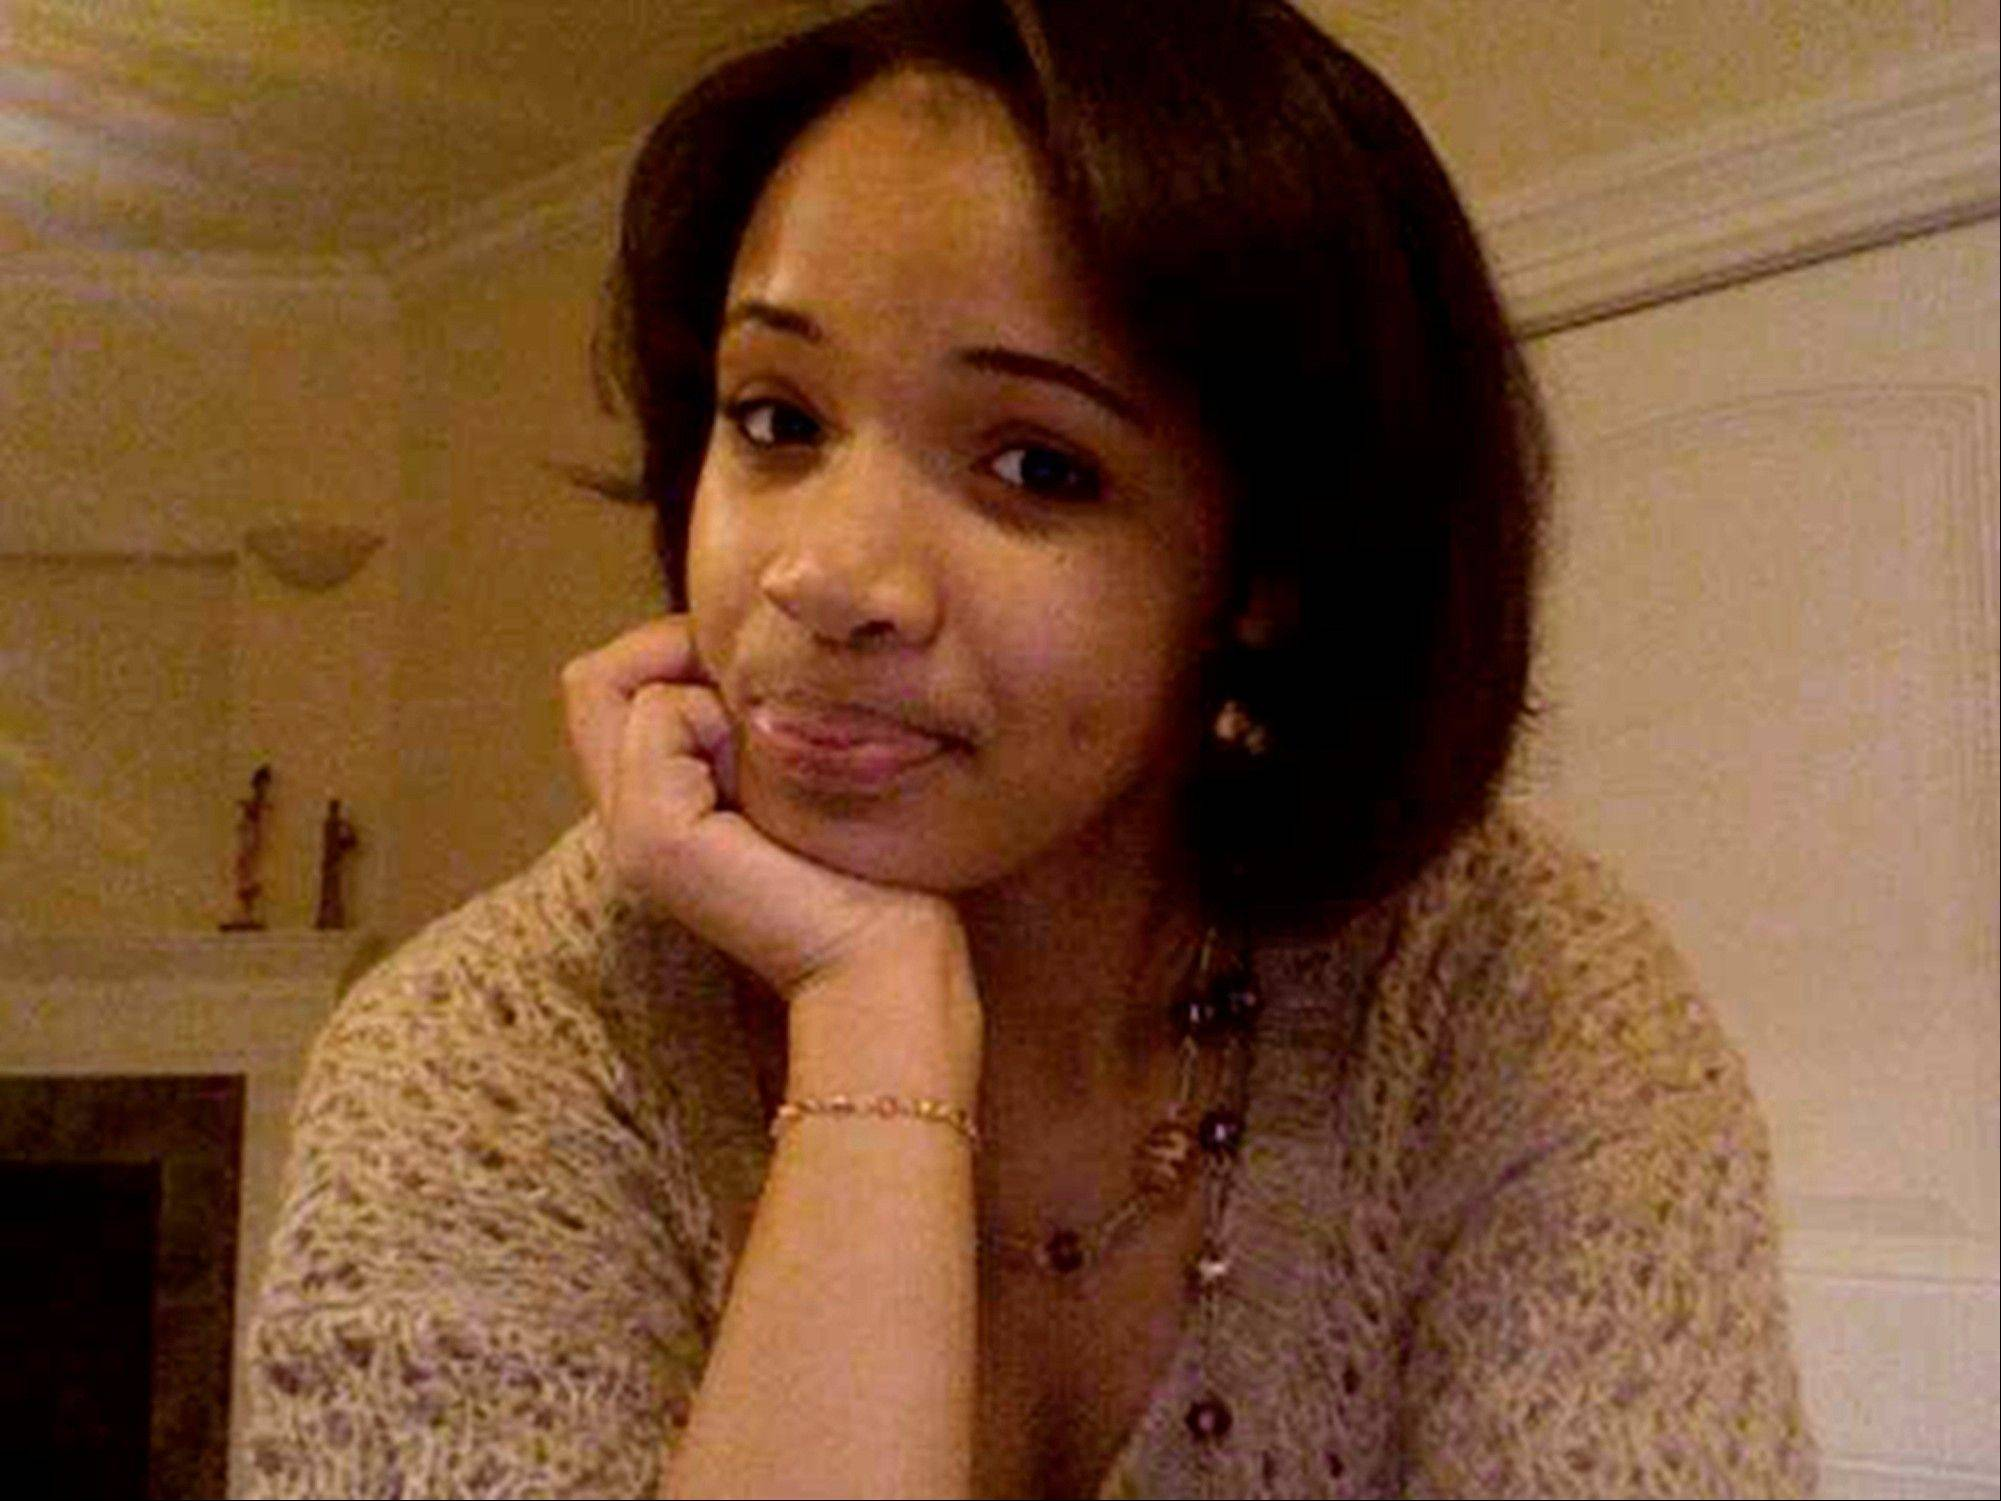 Hadiya Pendleton, 15, of Chicago who was shot Jan. 29 in a park near her home.